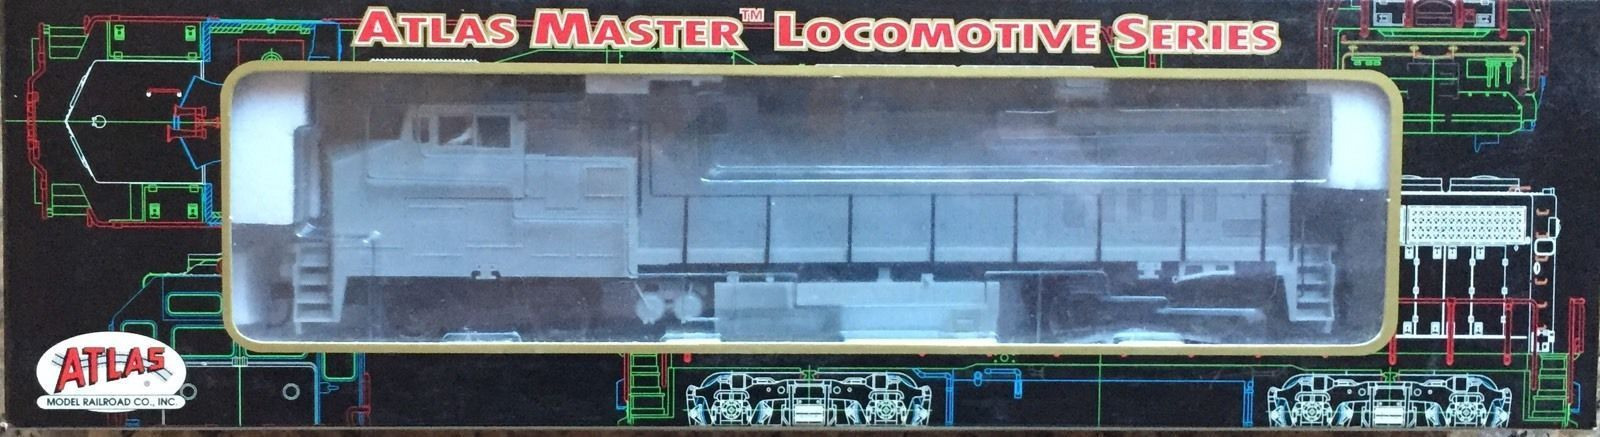 Atlas Dash 8-40BW Locomotive Undecorated (Gullwing Cab)  No 9051